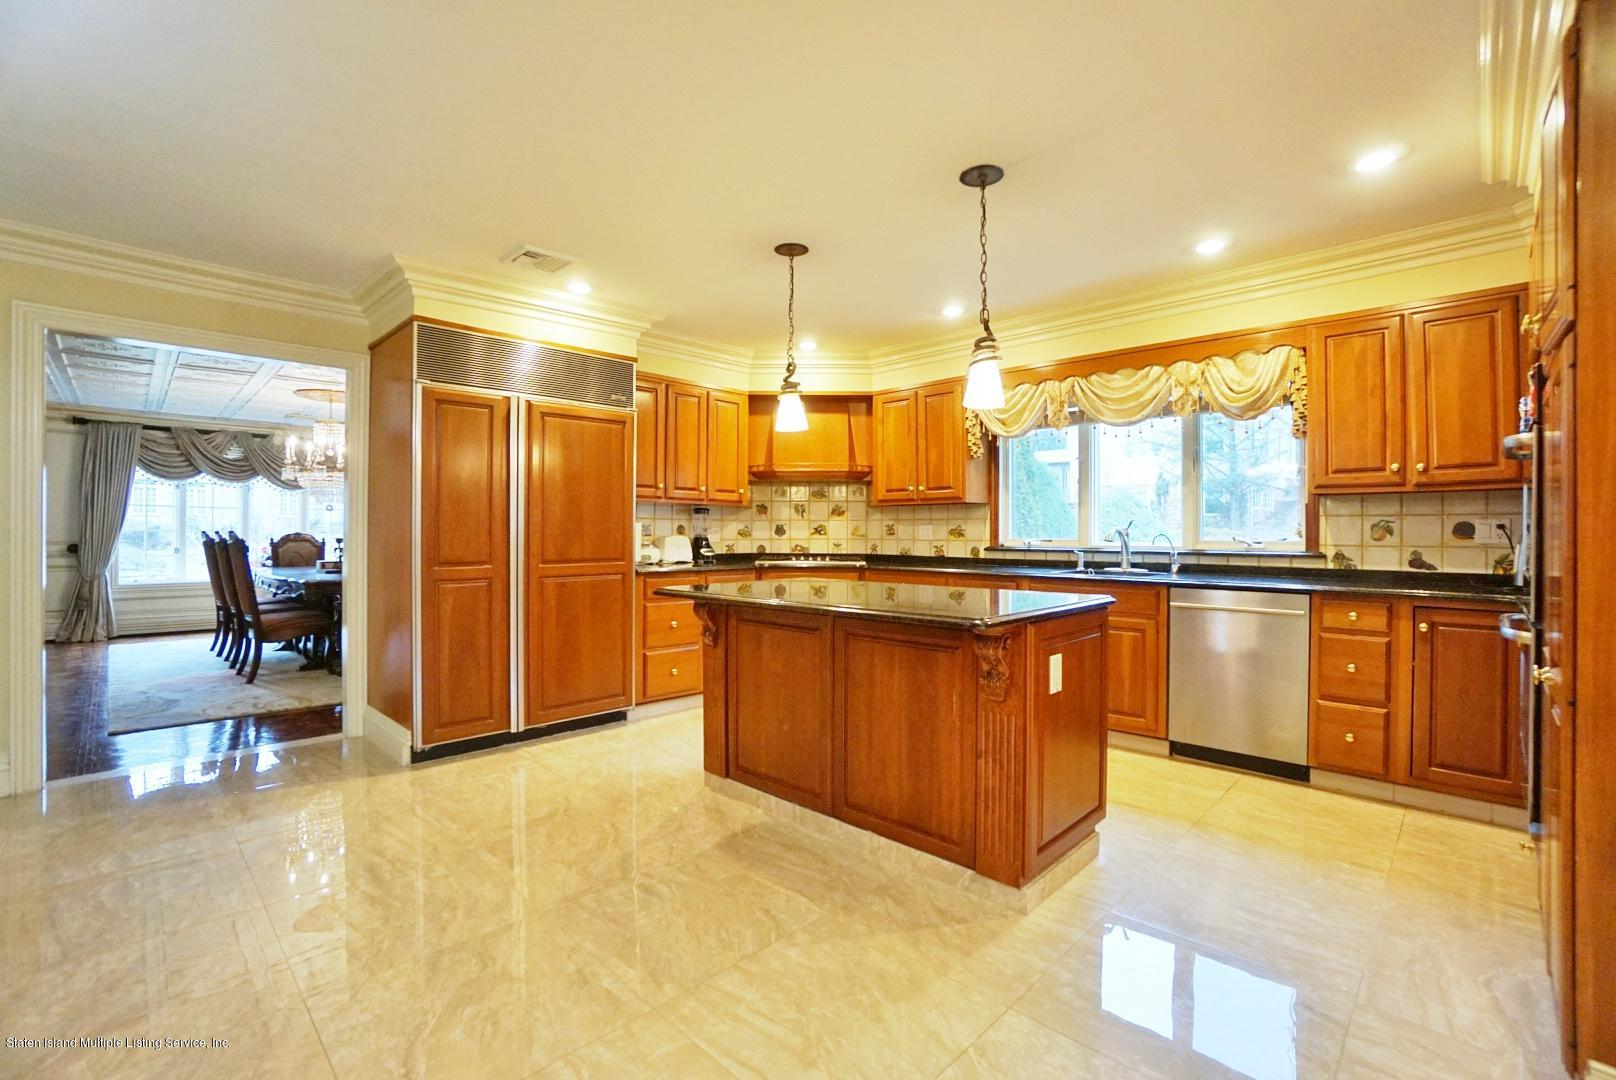 Single Family - Detached 1 Buttonwood Road   Staten Island, NY 10304, MLS-1135318-19